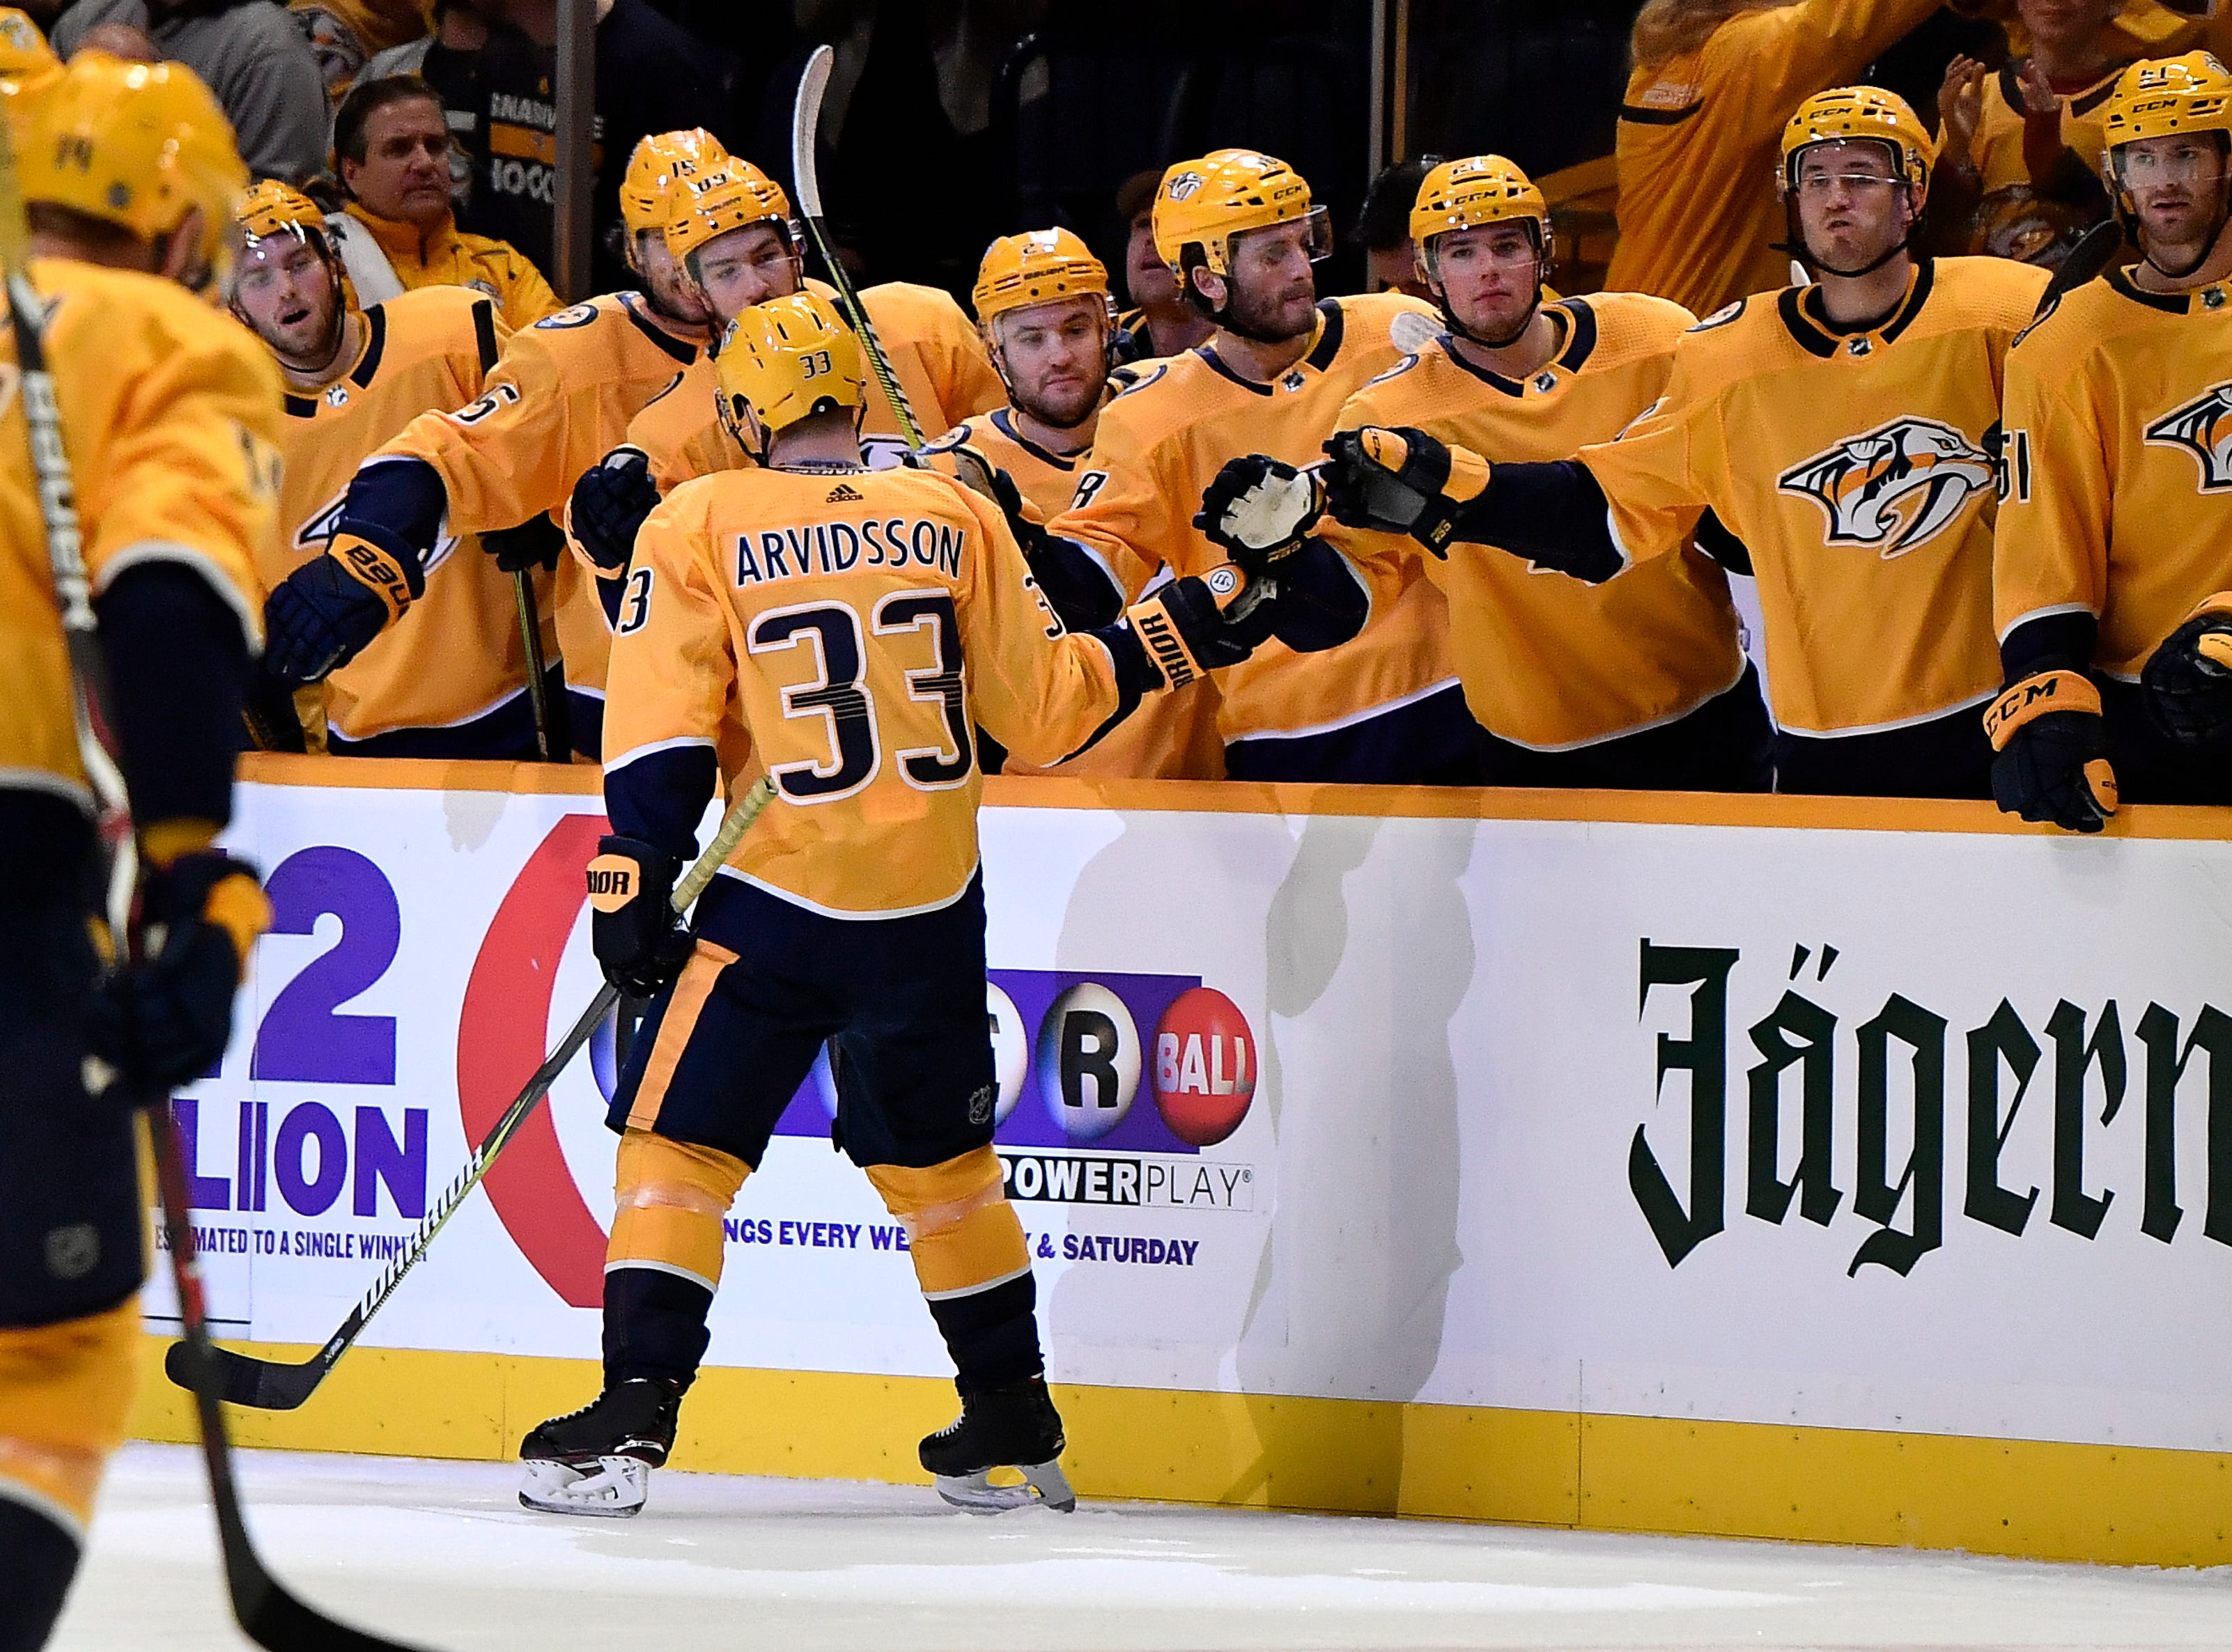 Predators right wing Viktor Arvidsson (33) is congratulated after his goal during the first period against the Capitals at Bridgestone Arena Tuesday, Jan. 15, 2019, in Nashville, Tenn.